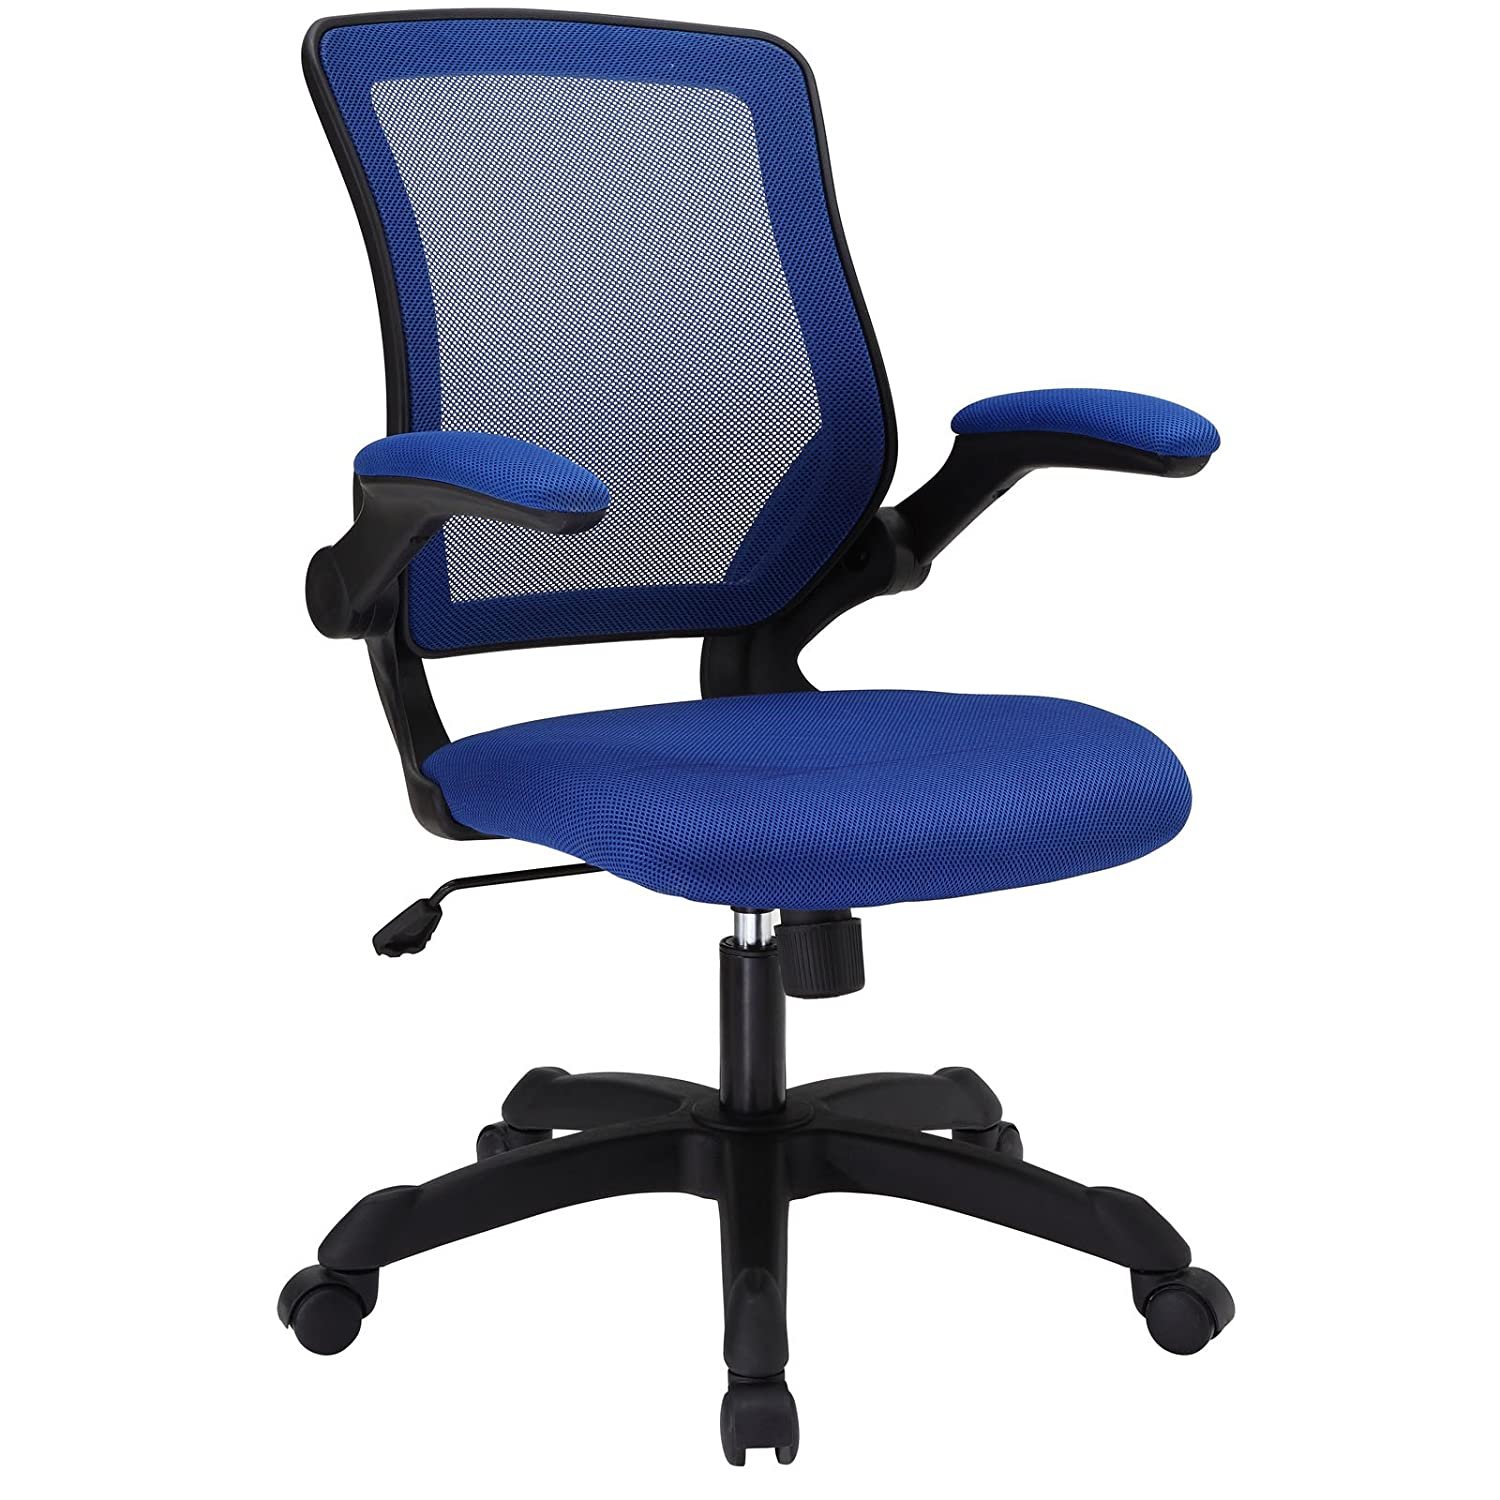 Charmant Amazon.com: Modway Veer Office Chair With Mesh Back And Blue Vinyl Seat  With Flip Up Arms   Ergonomic Desk And Computer Chair: Kitchen U0026 Dining